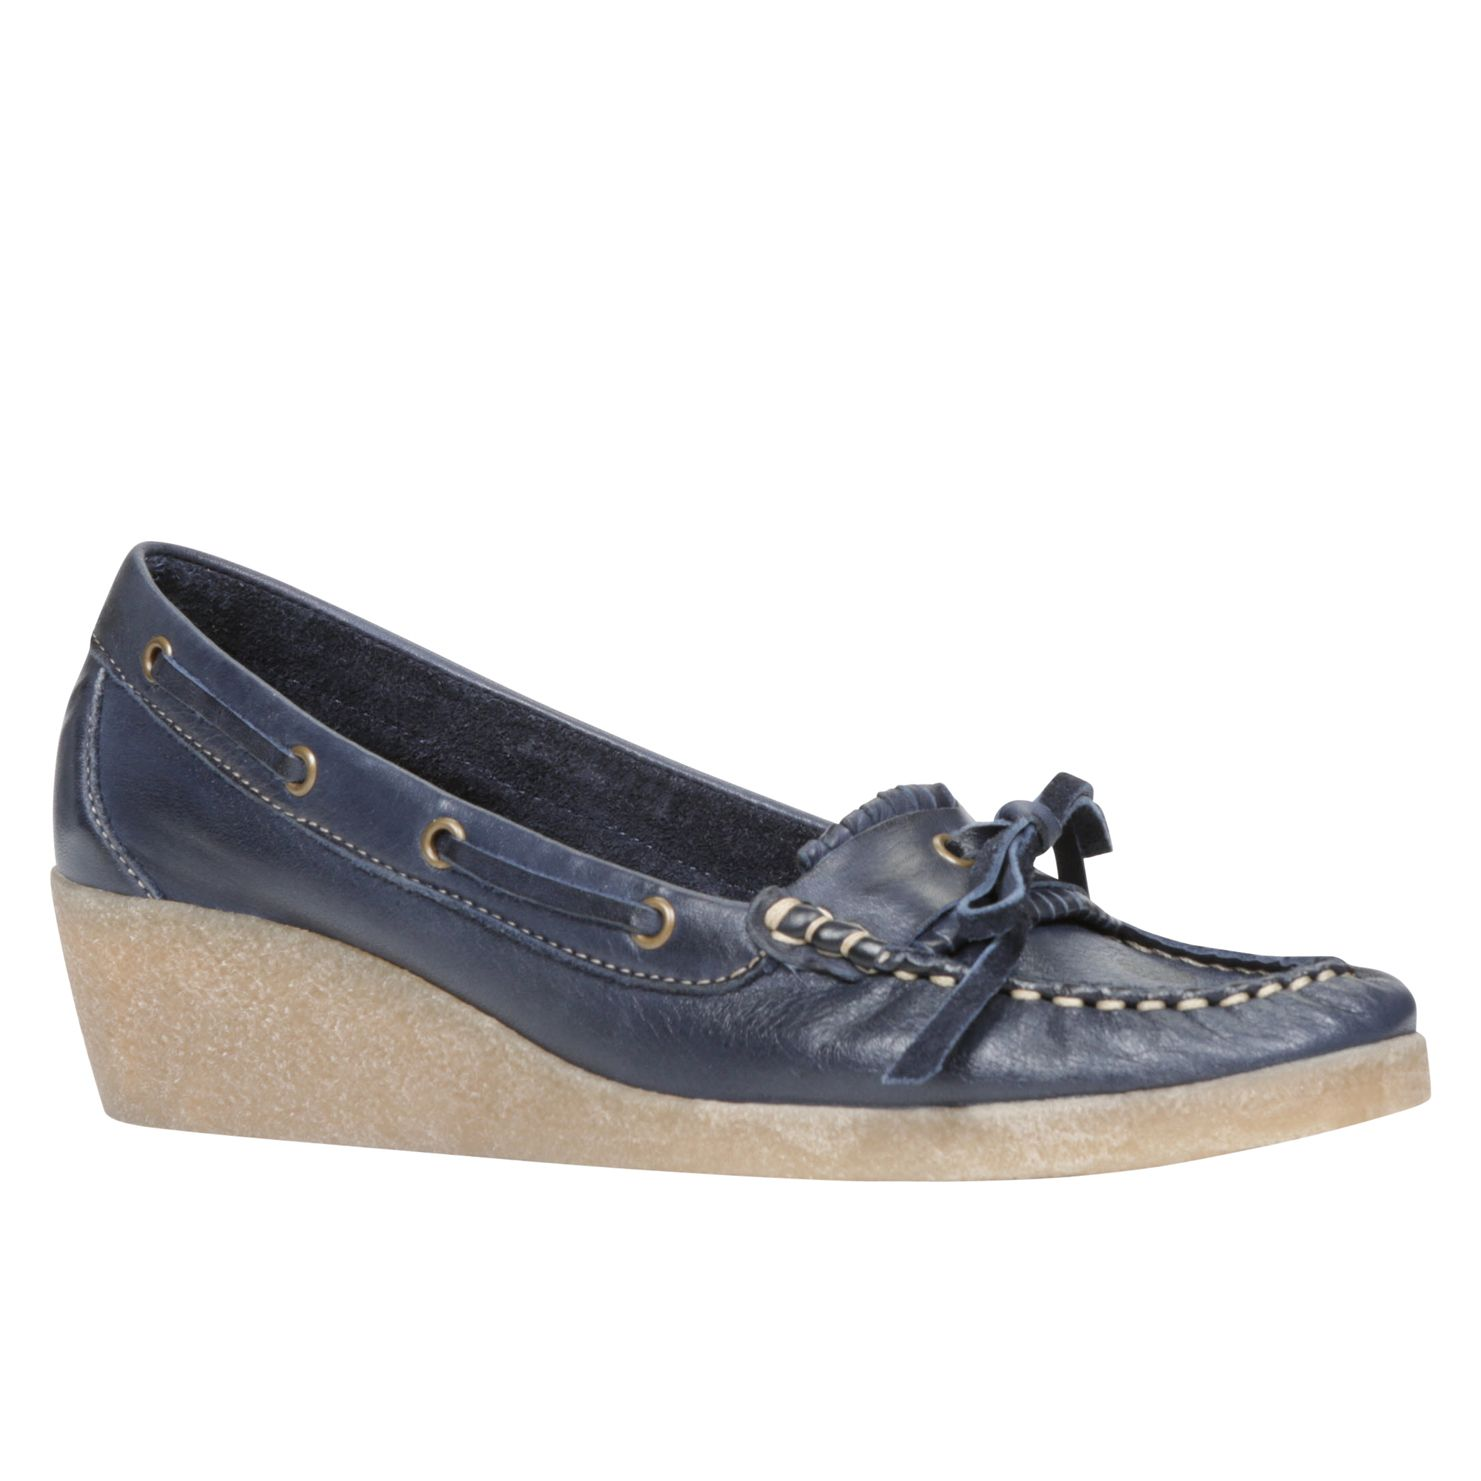 Renee loafer wedge shoes